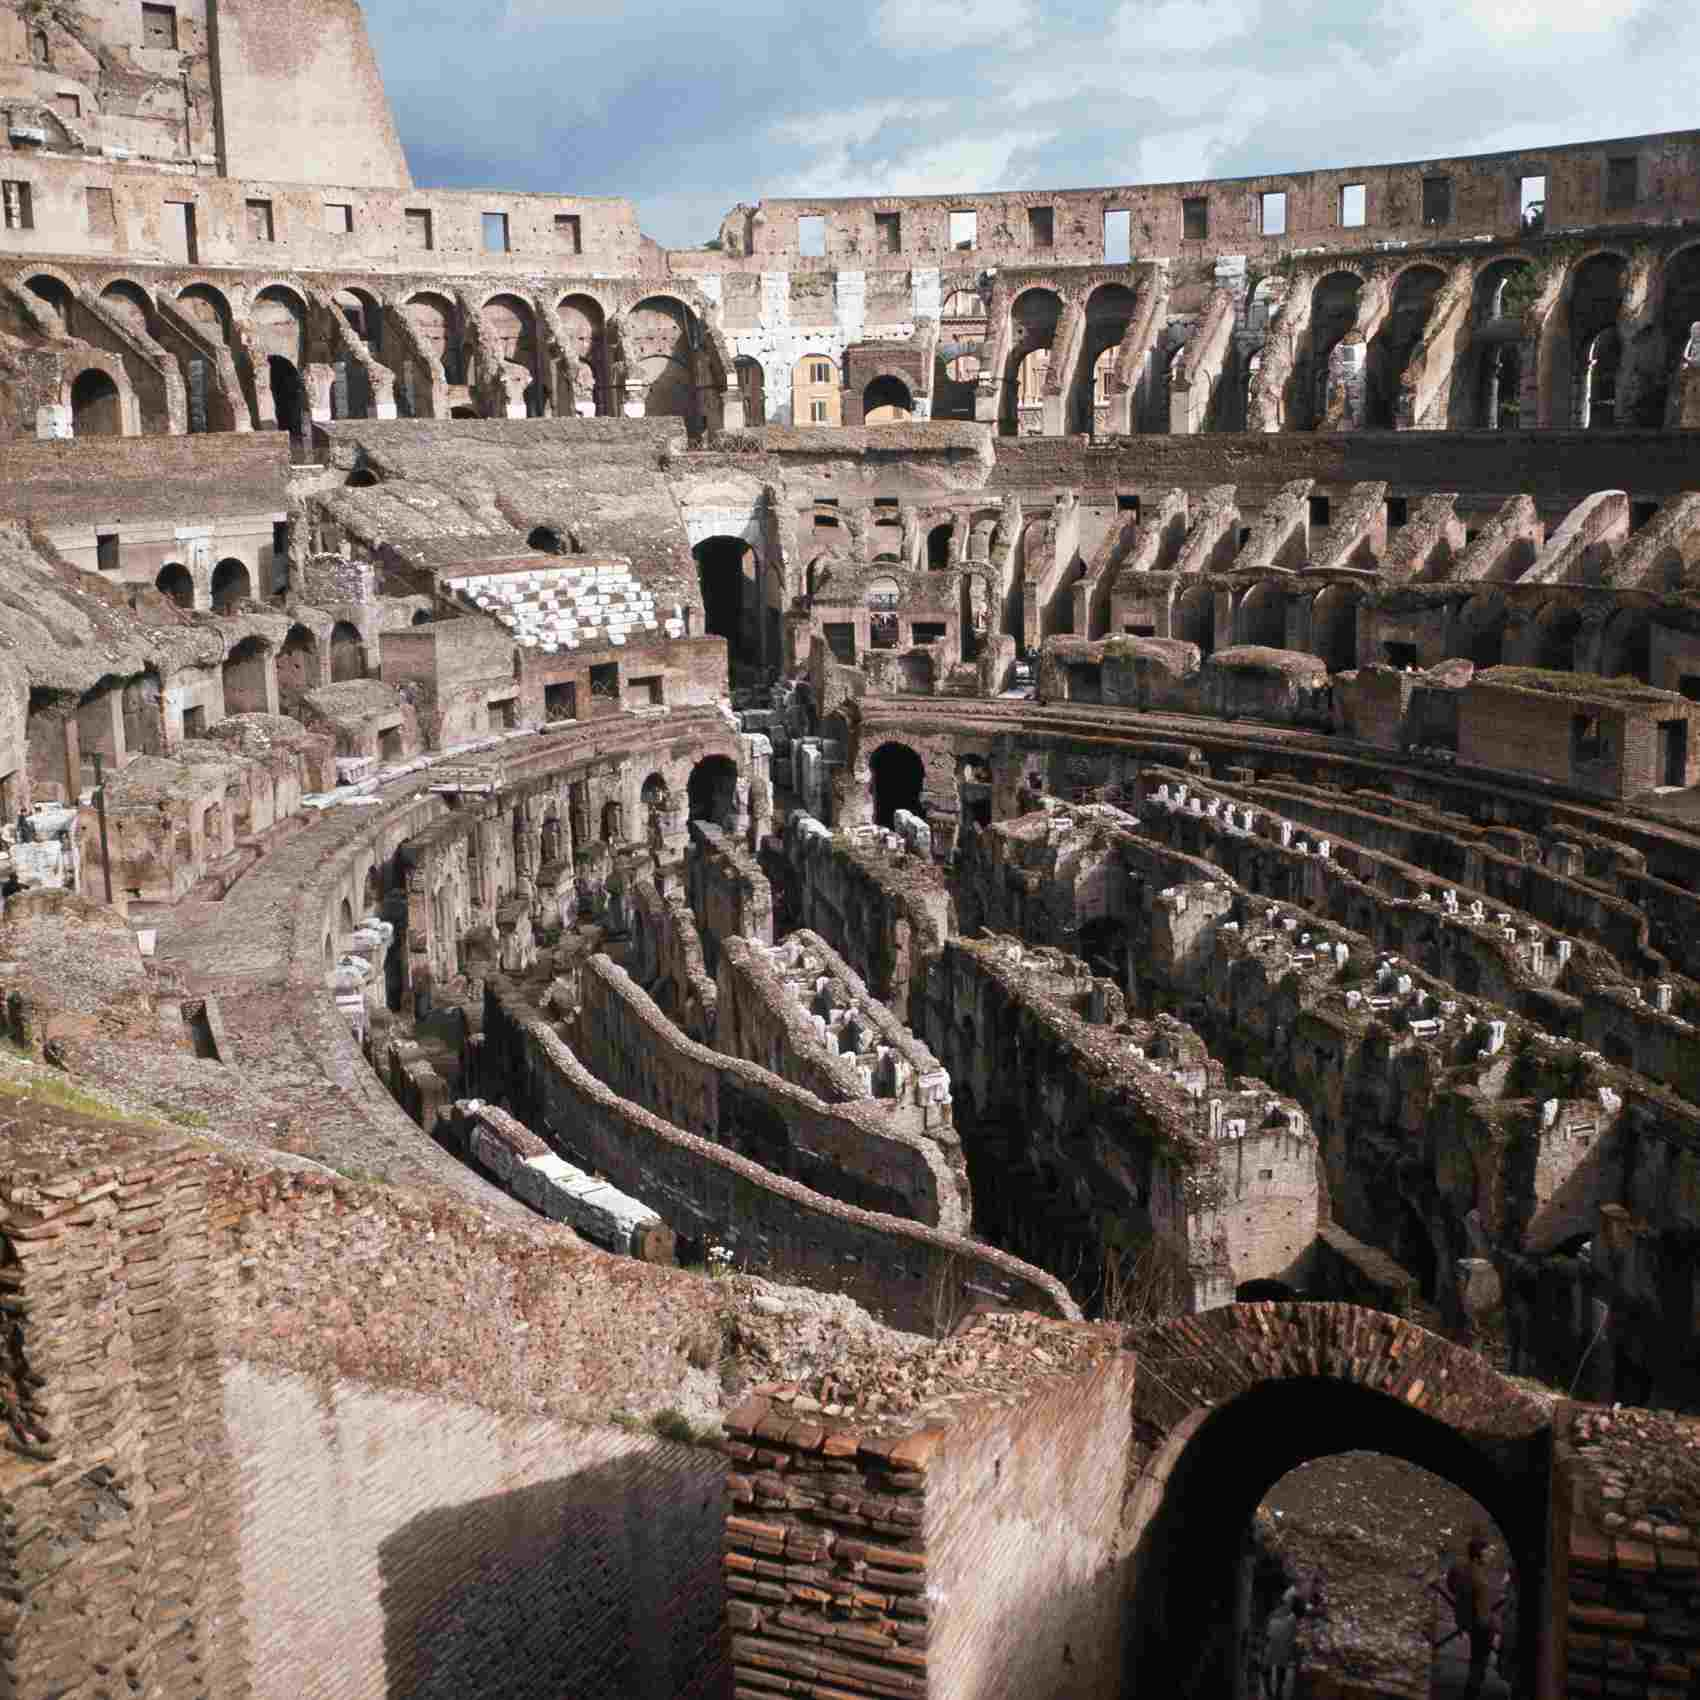 The Colosseum is worth paying the entry fee